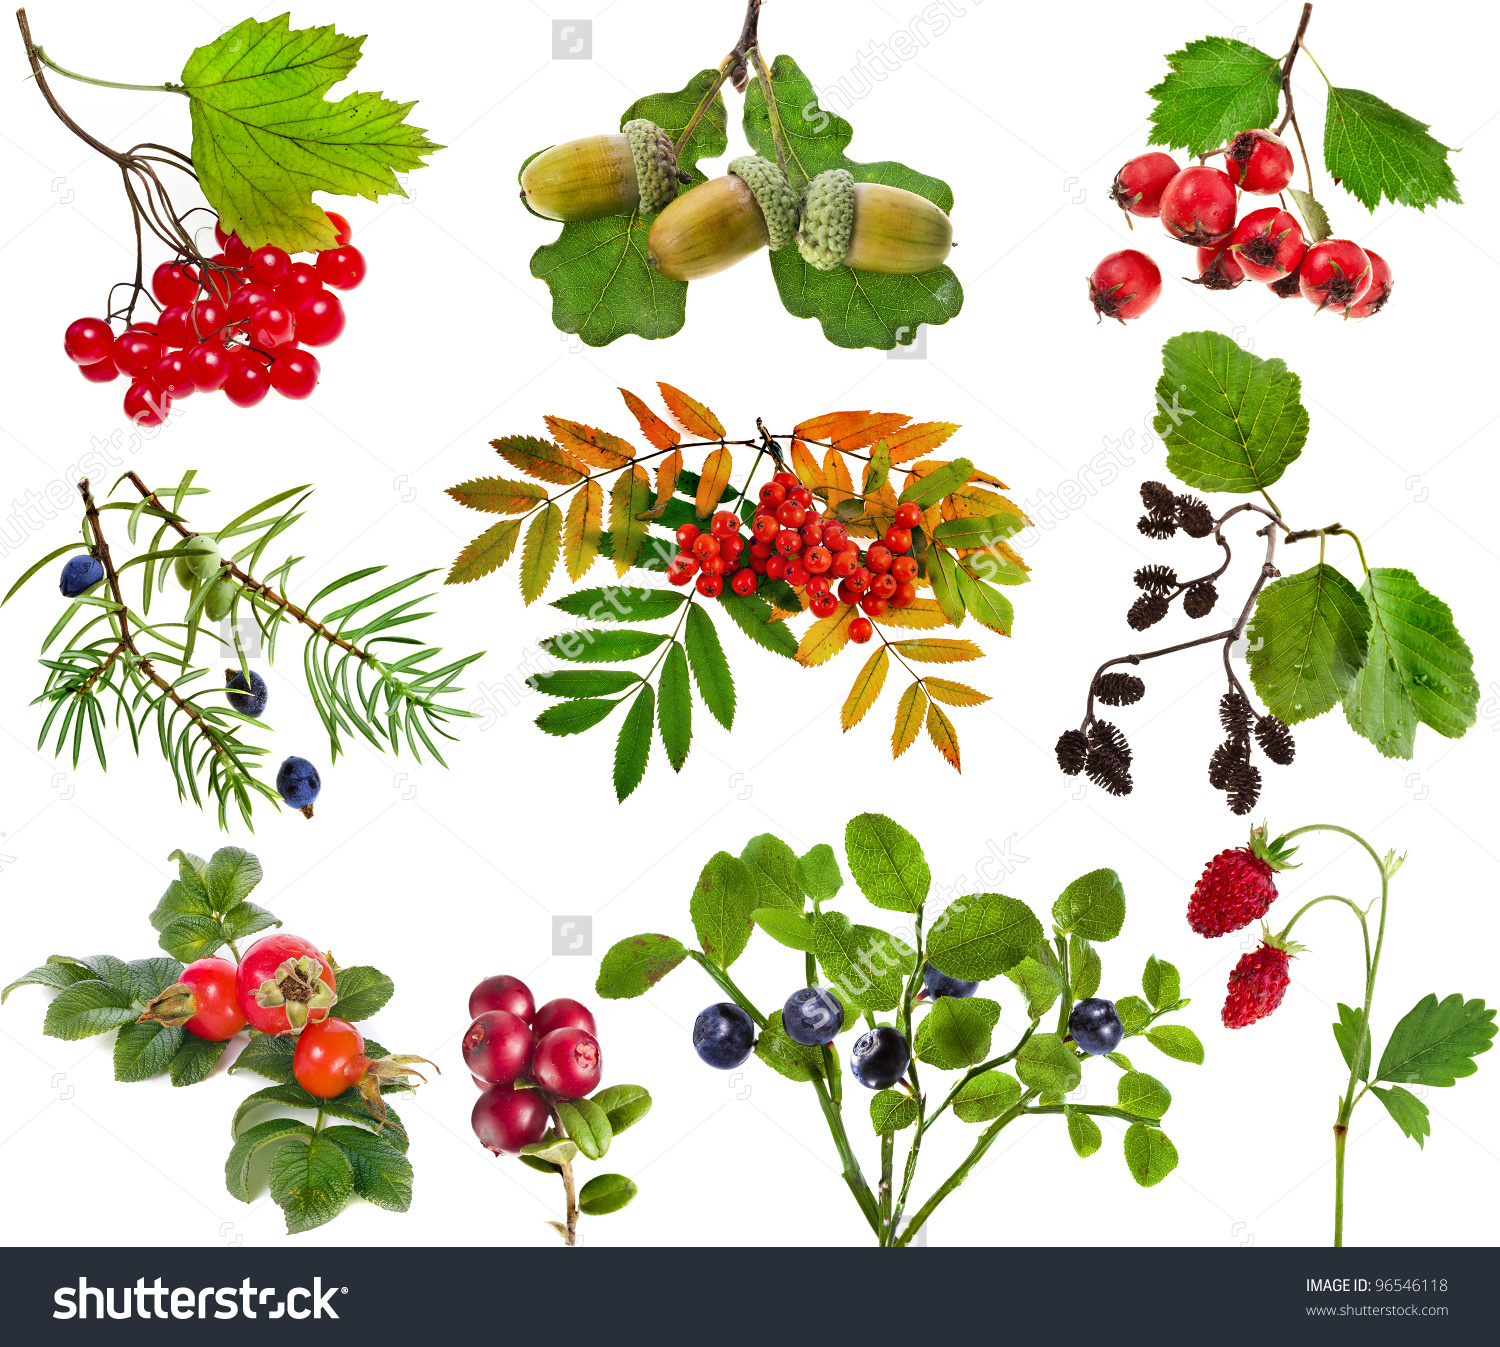 Of the wild fruits clipart #9